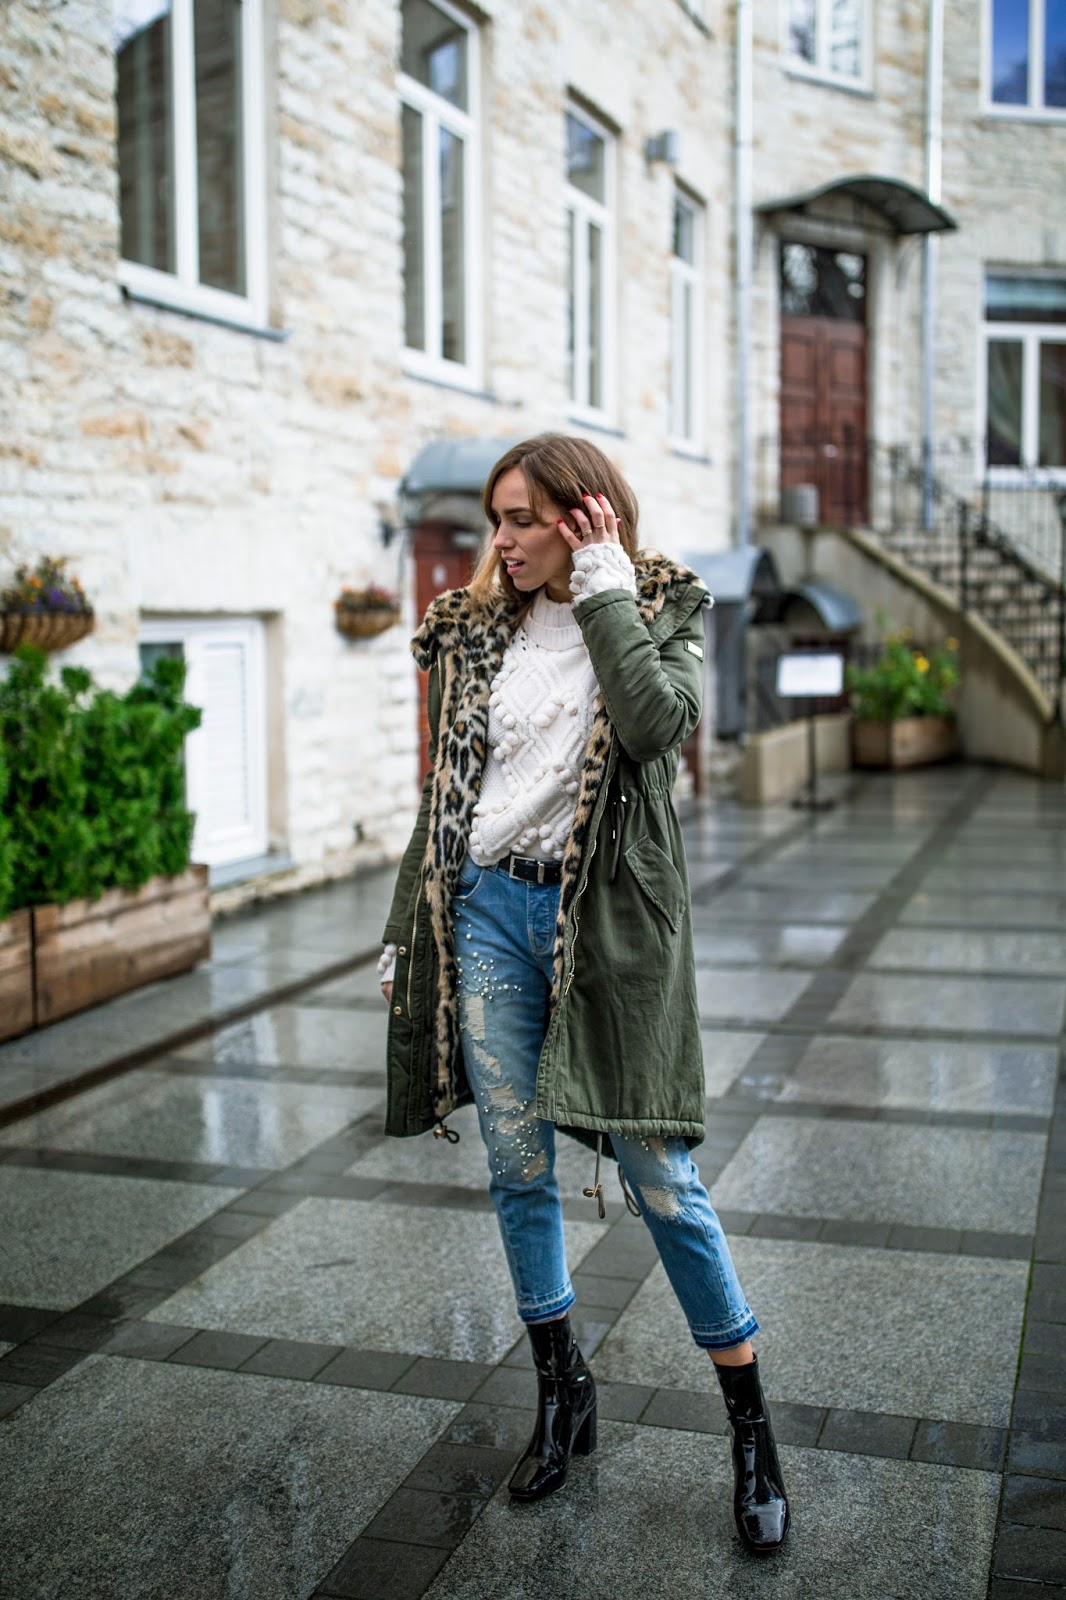 green parka jacket outfit sweater jeans heels